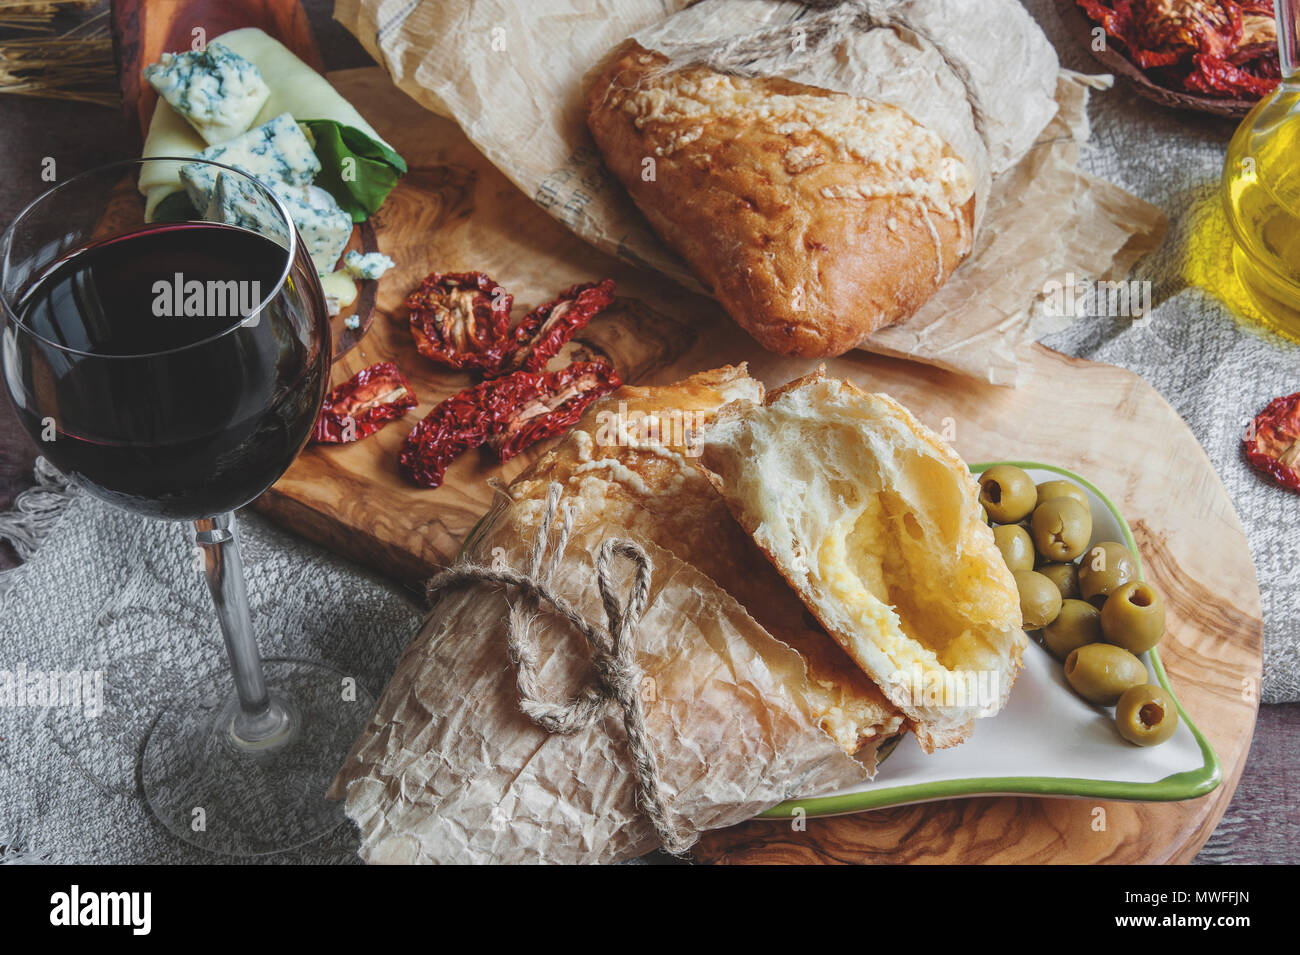 A glass of dry red wine and Italian Focaccia bread with cheese and a cheese platter with figs and Gorgonzola, brie, DorBlu and grapes. Selective focus - Stock Image